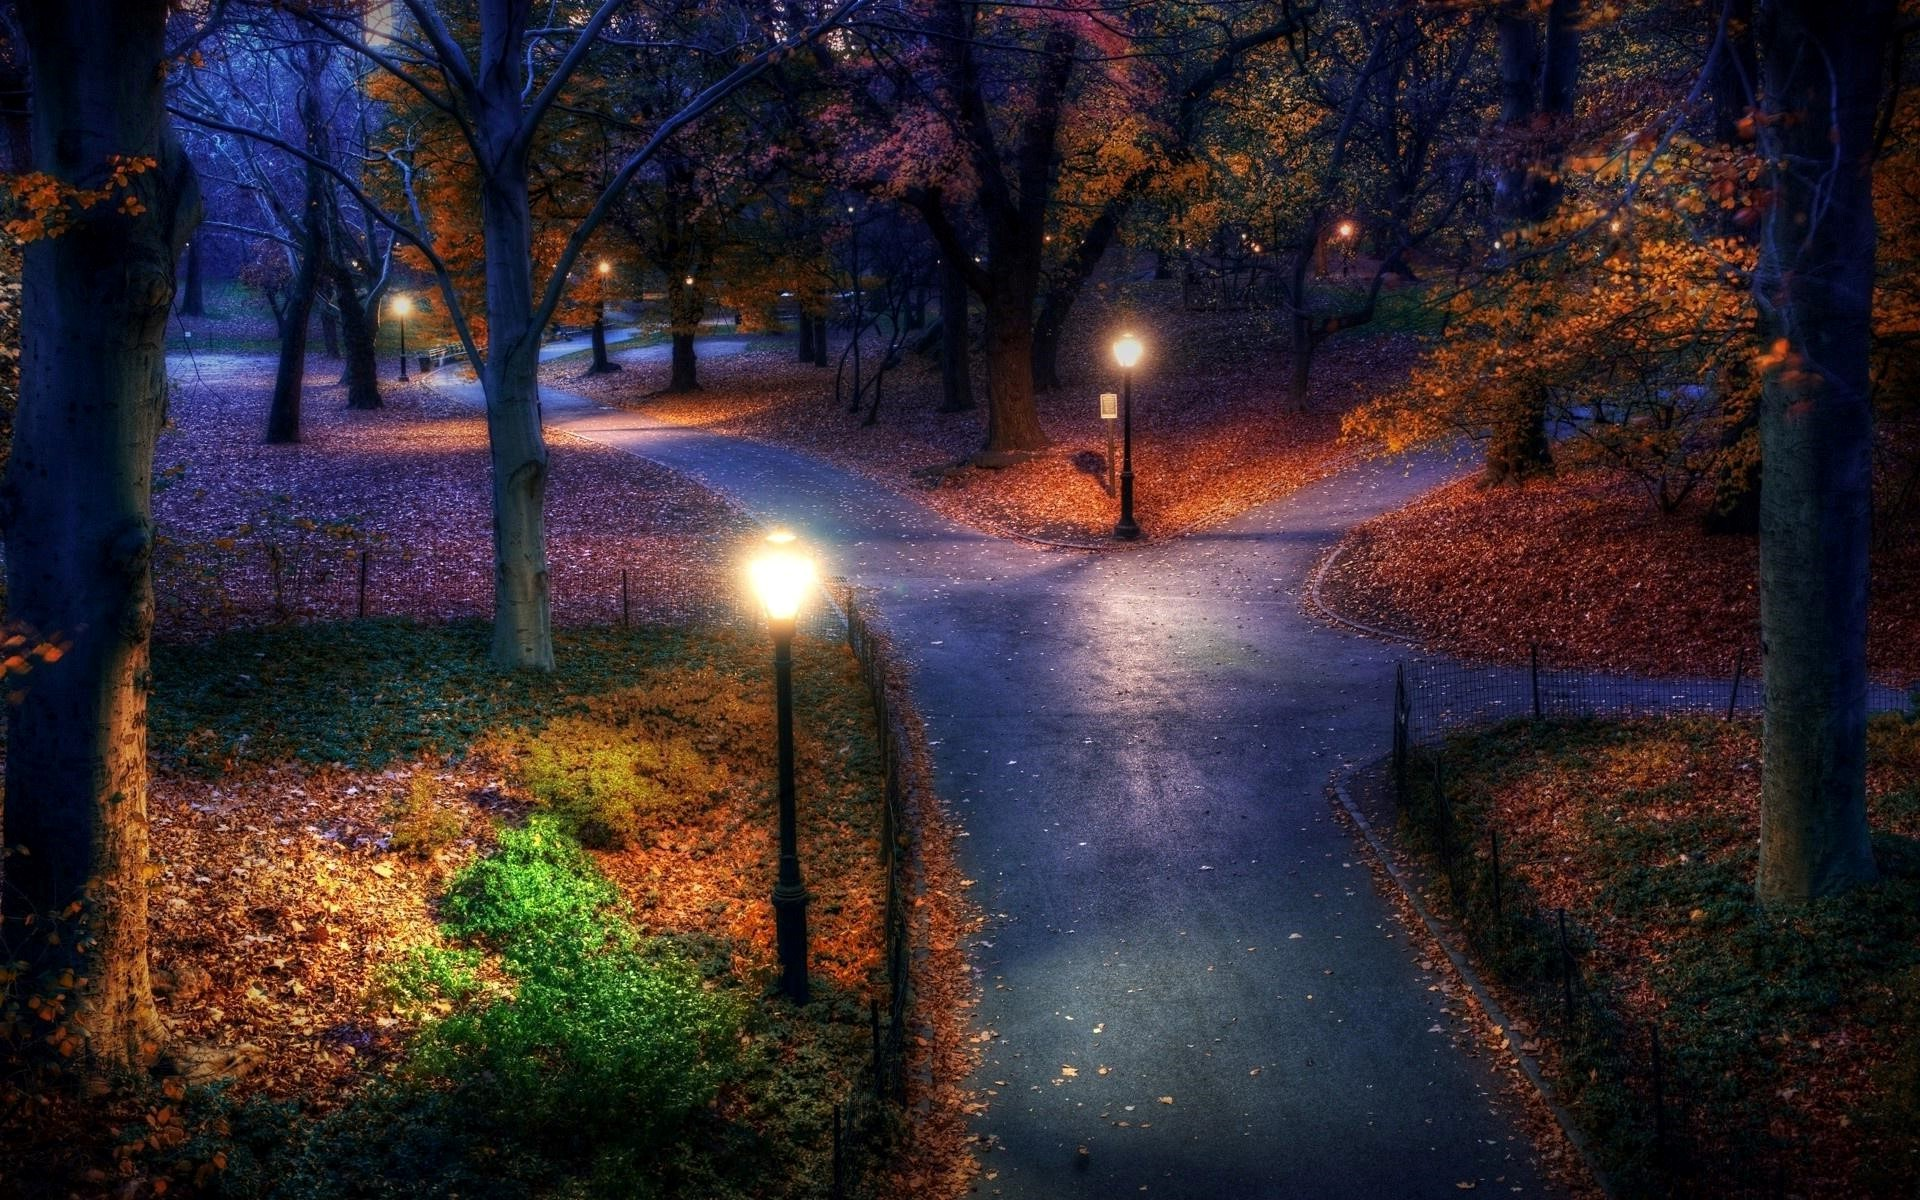 Cute Cats Image Wallpaper Three Paths In The Park Night Landscape